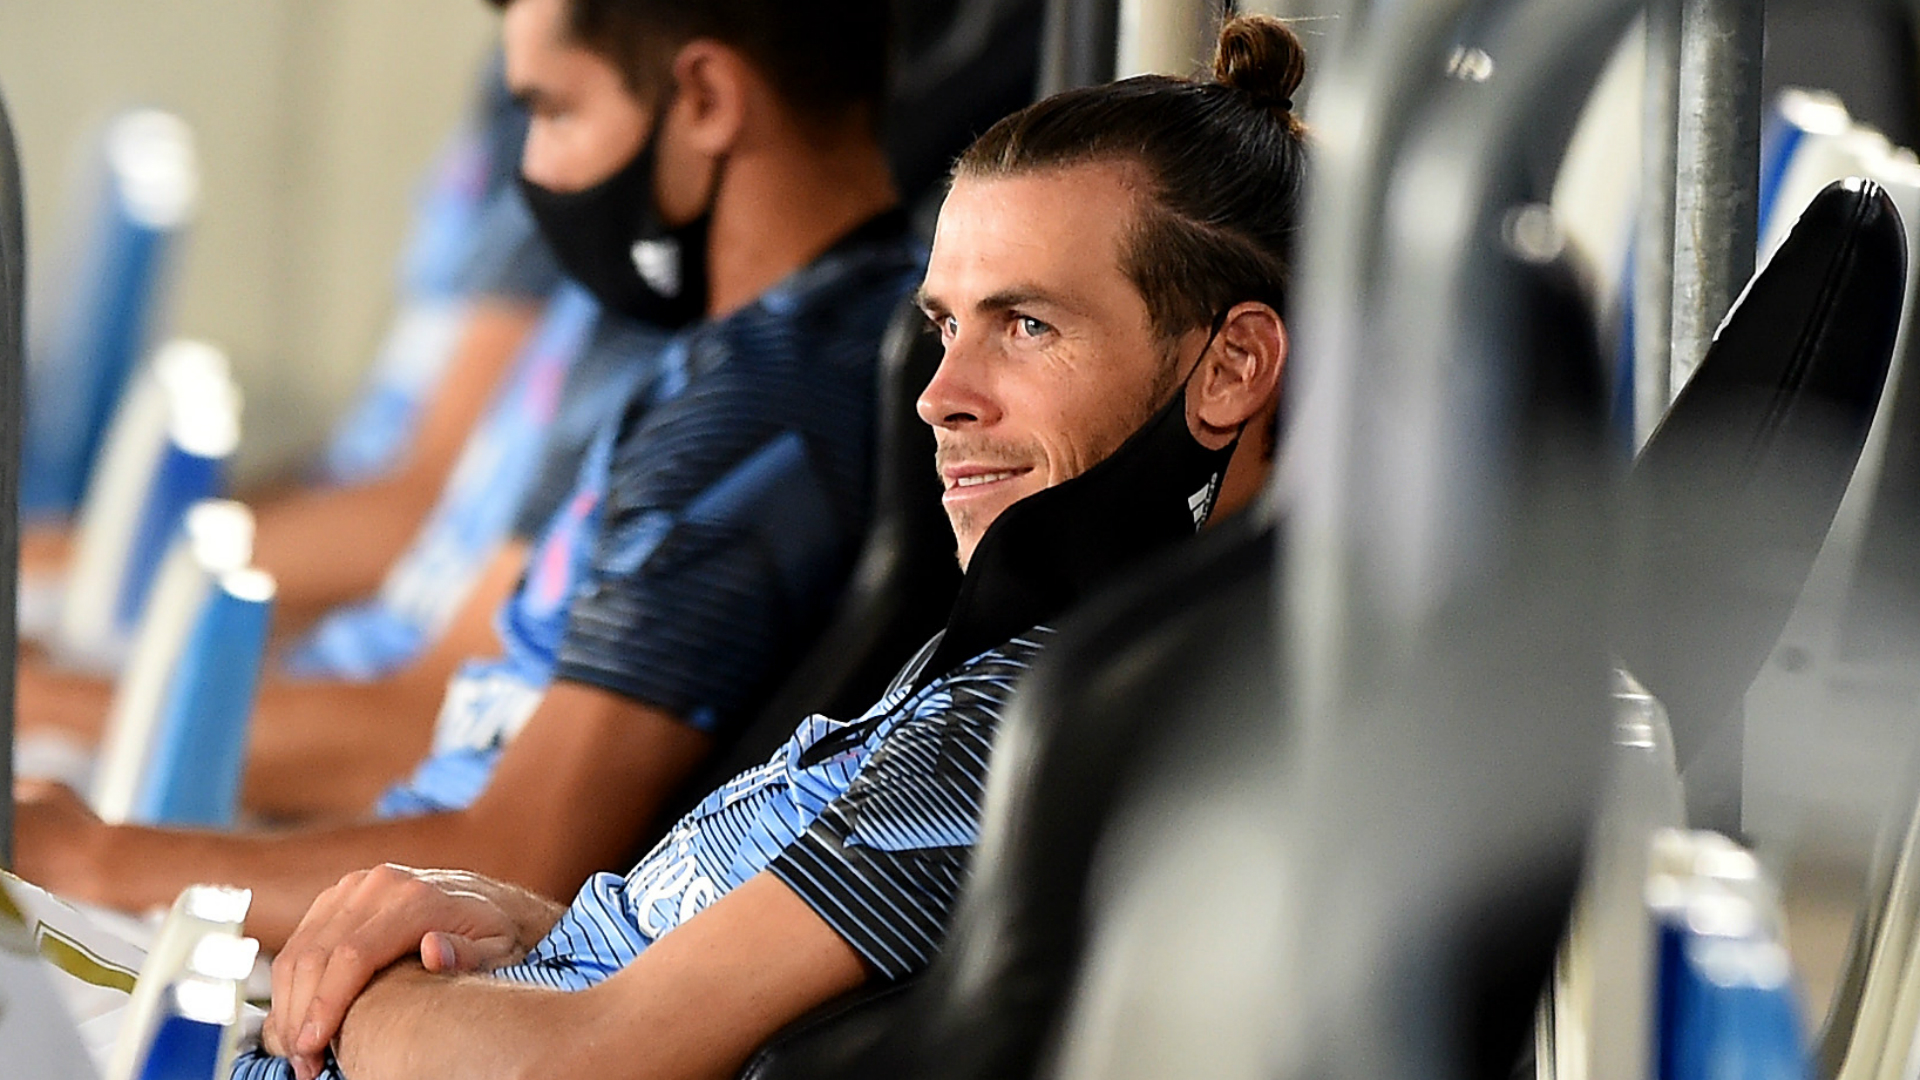 Gareth Bale was not named in Real Madrid's group to head to Manchester City even though the unavailable Sergio Ramos was.